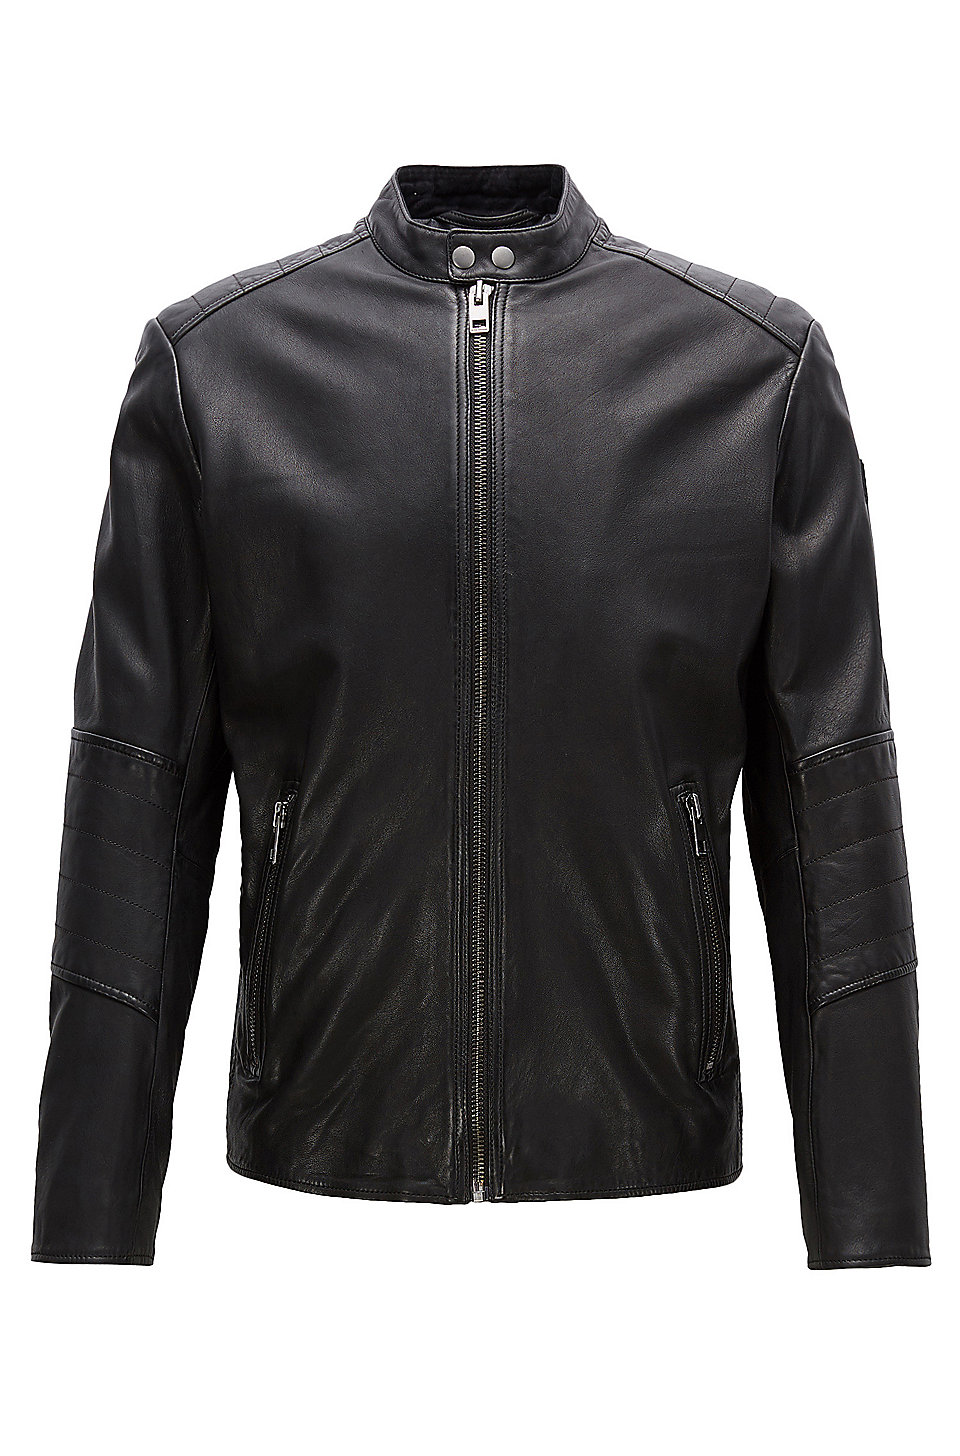 Leather jackets for men by HUGO BOSS | Premium materials & cuts